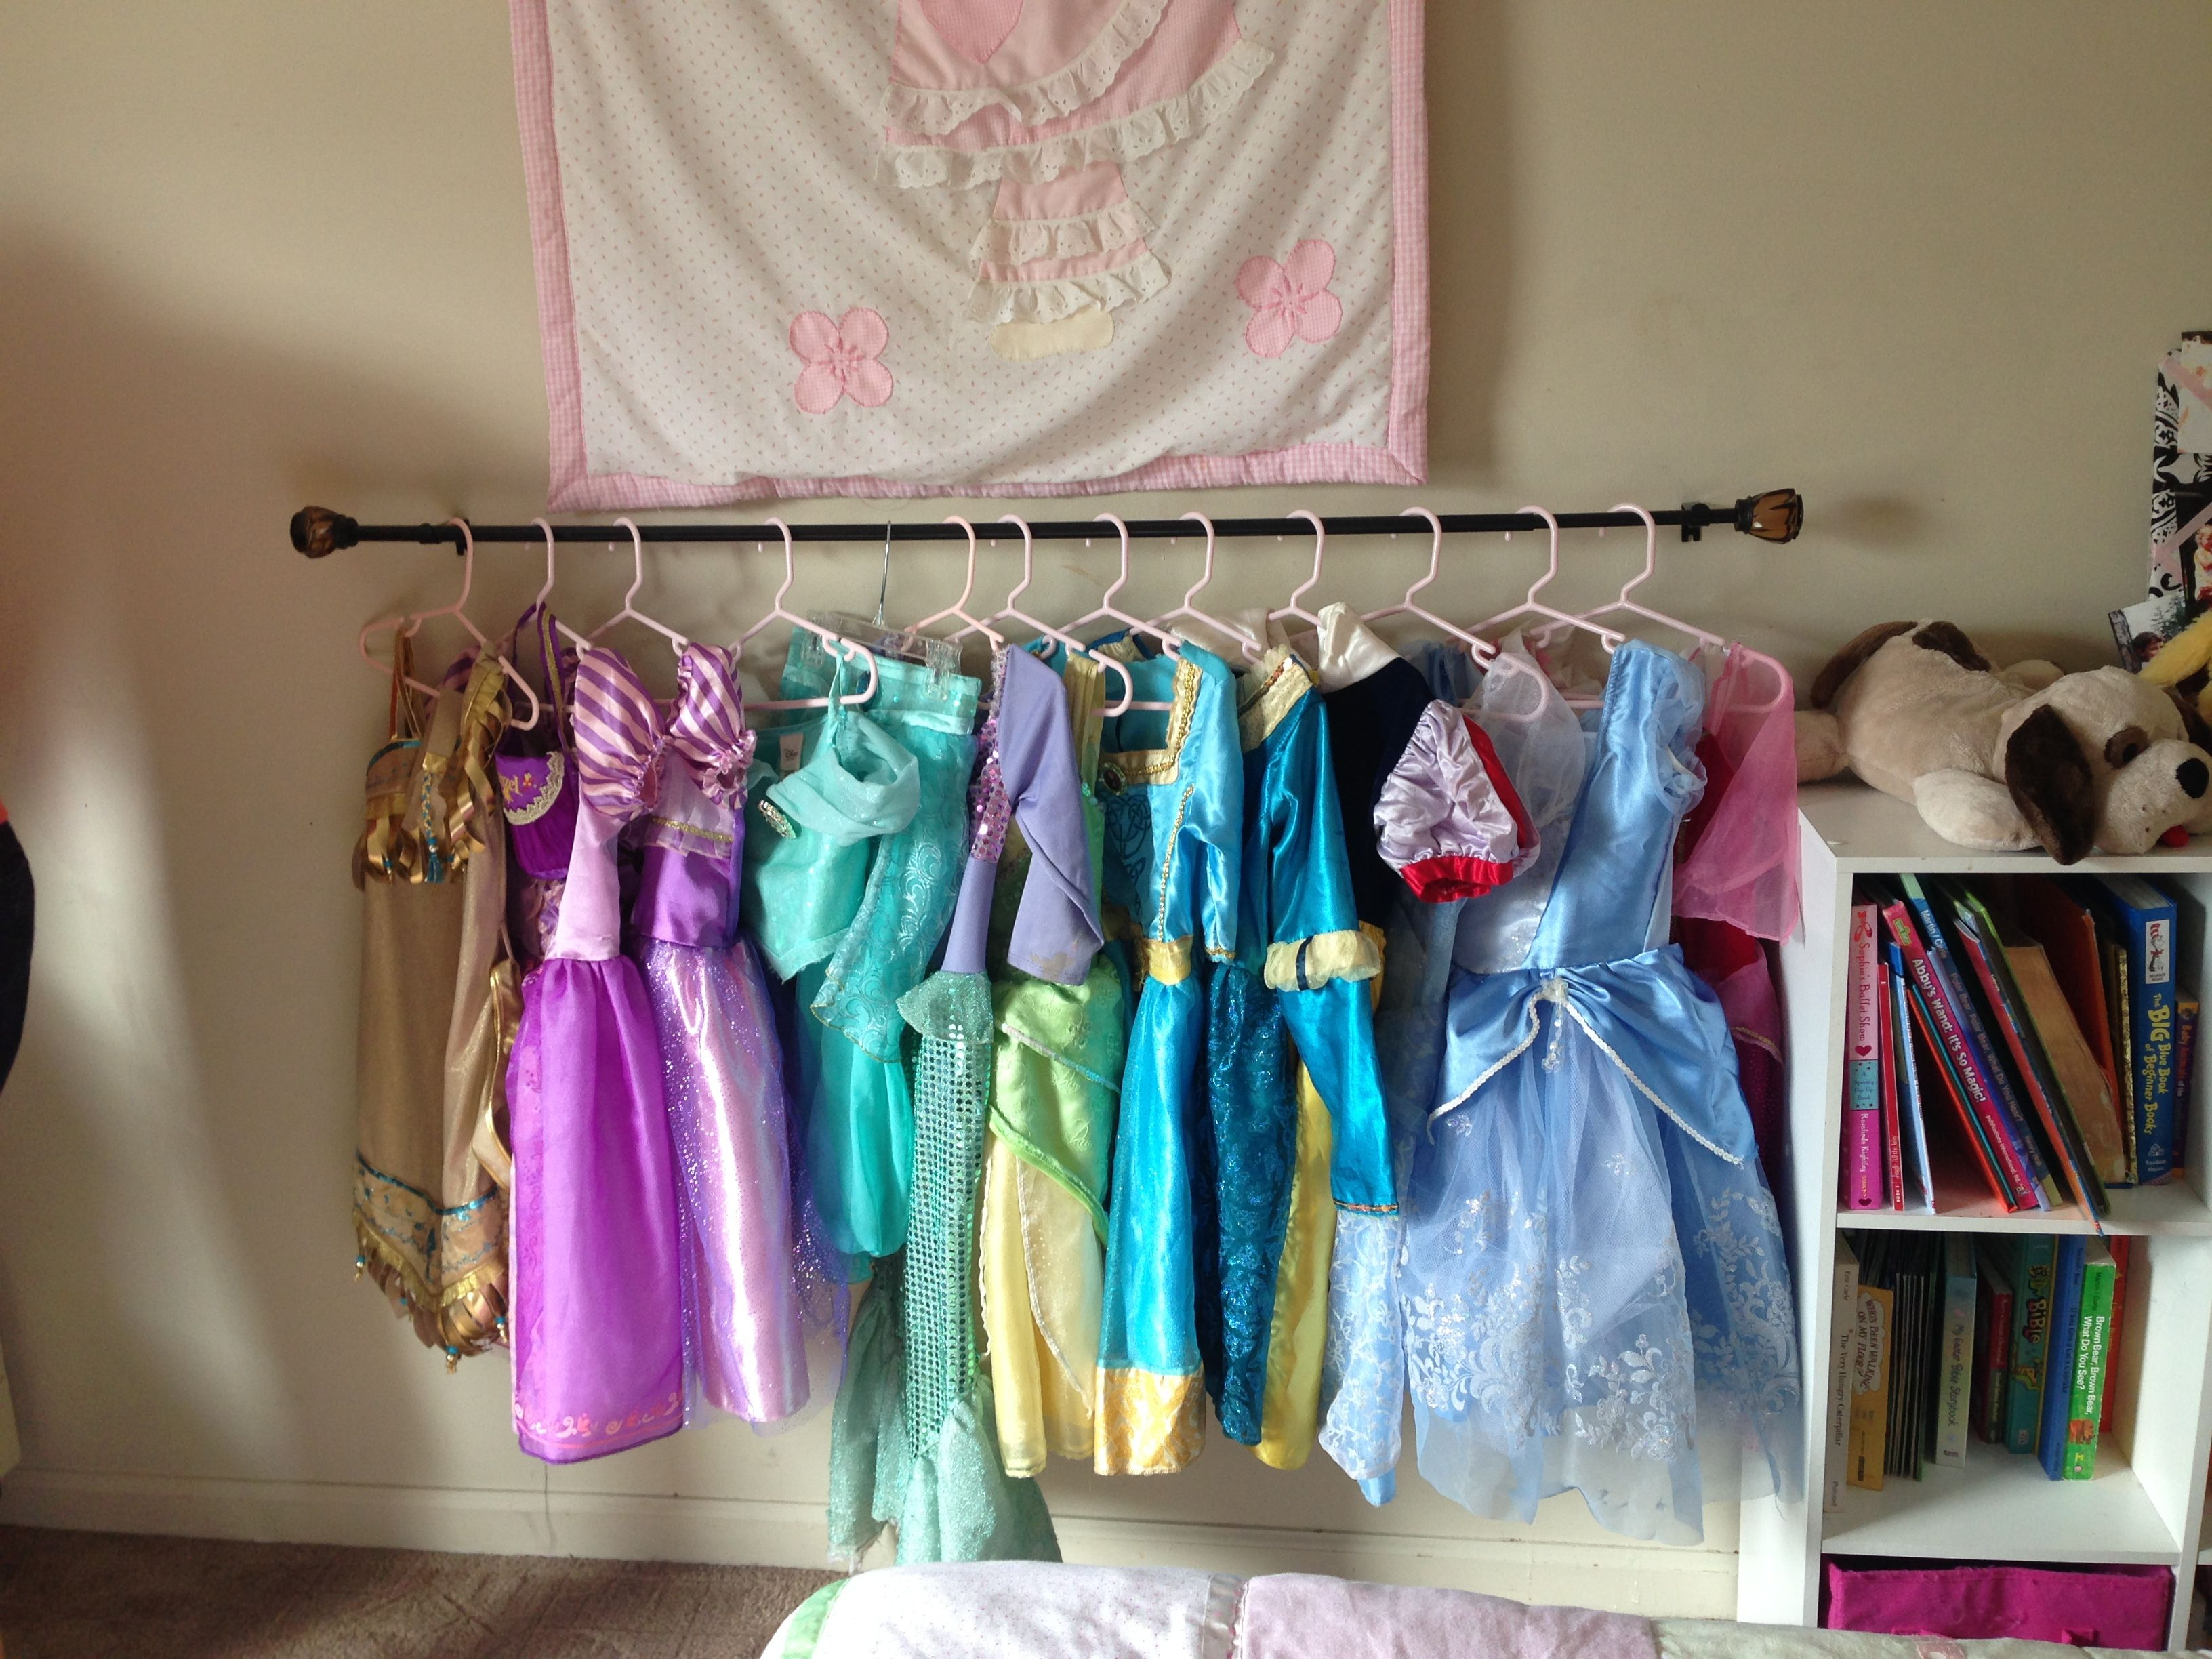 Use A Curtain Rod Mounted To The Wall At Child S Height To Hang Dress Up Clothes On So The Child Has Easy Access